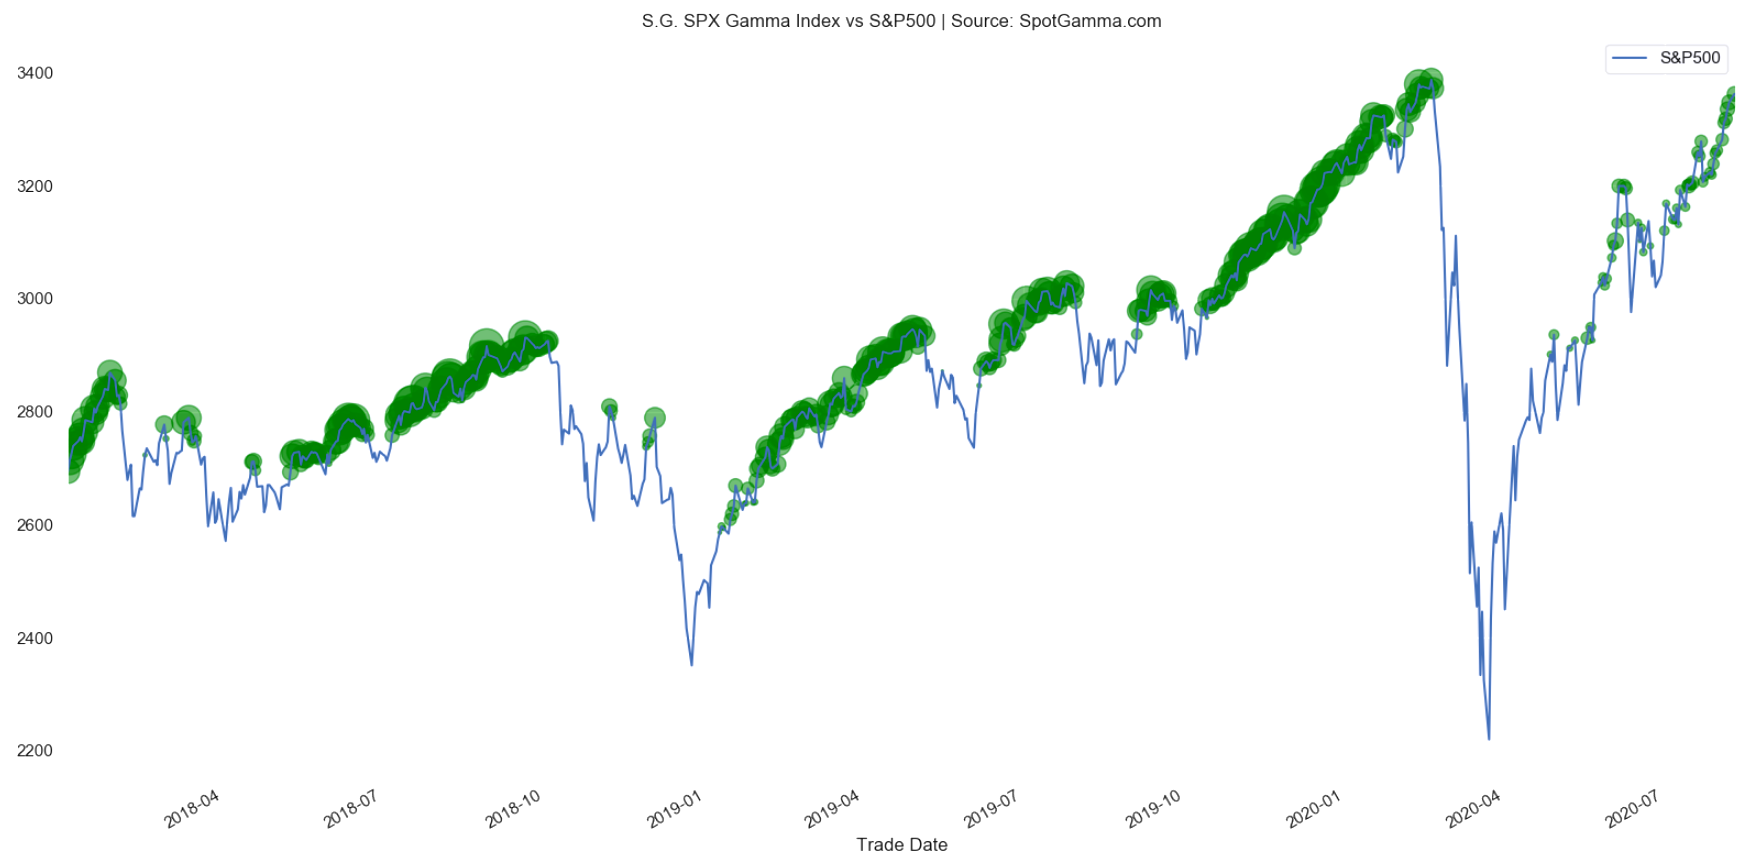 SPX gamma index vs S&P